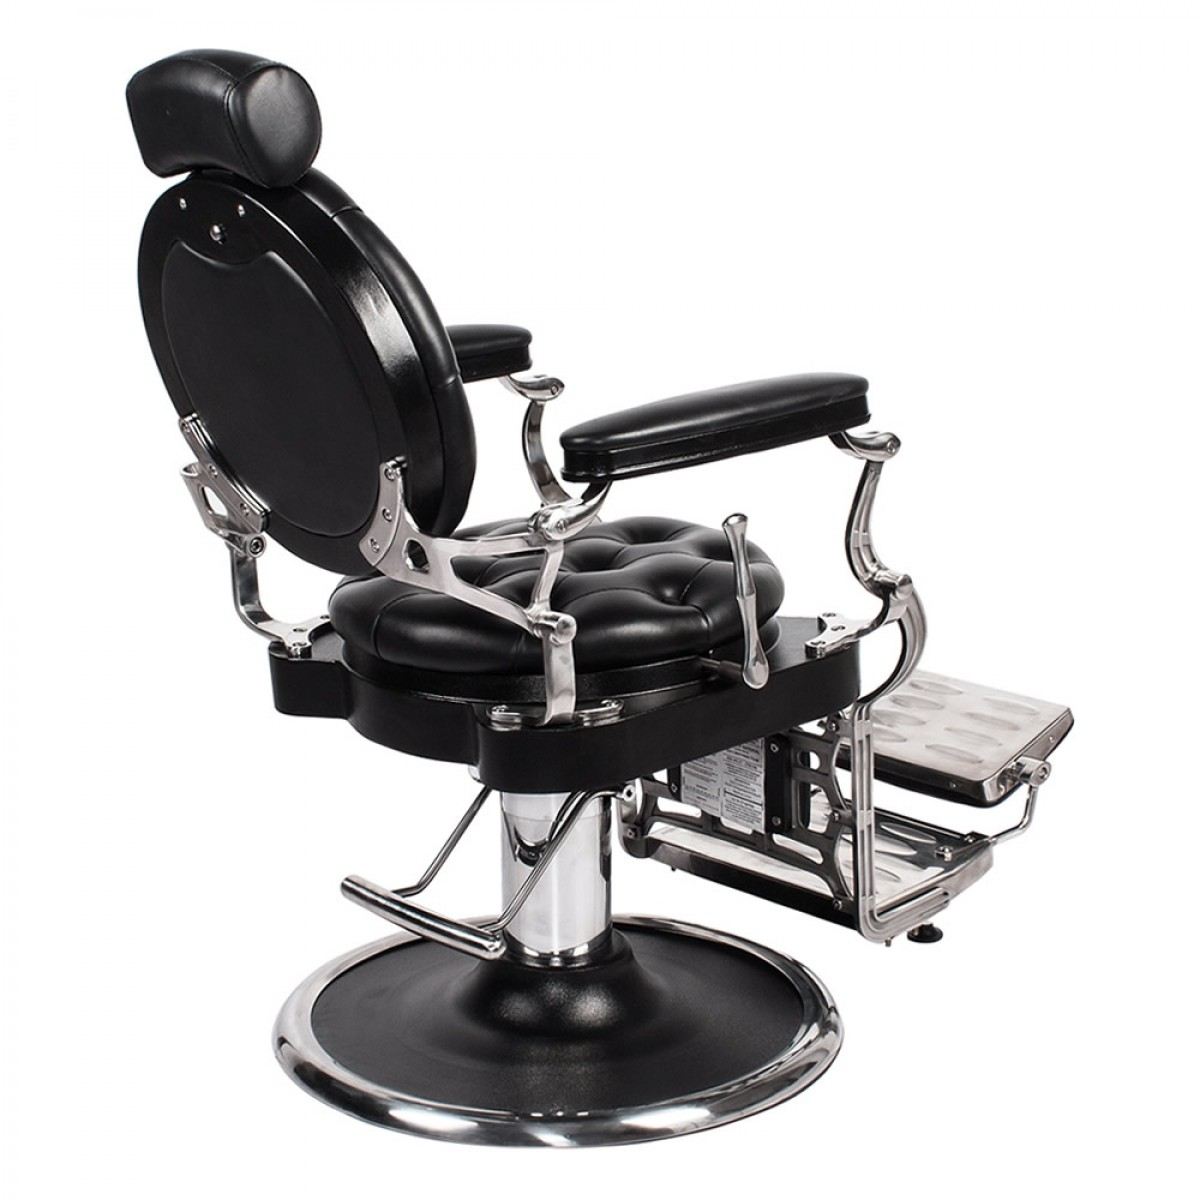 Justinian antique barber chair free shipping for A b salon equipment